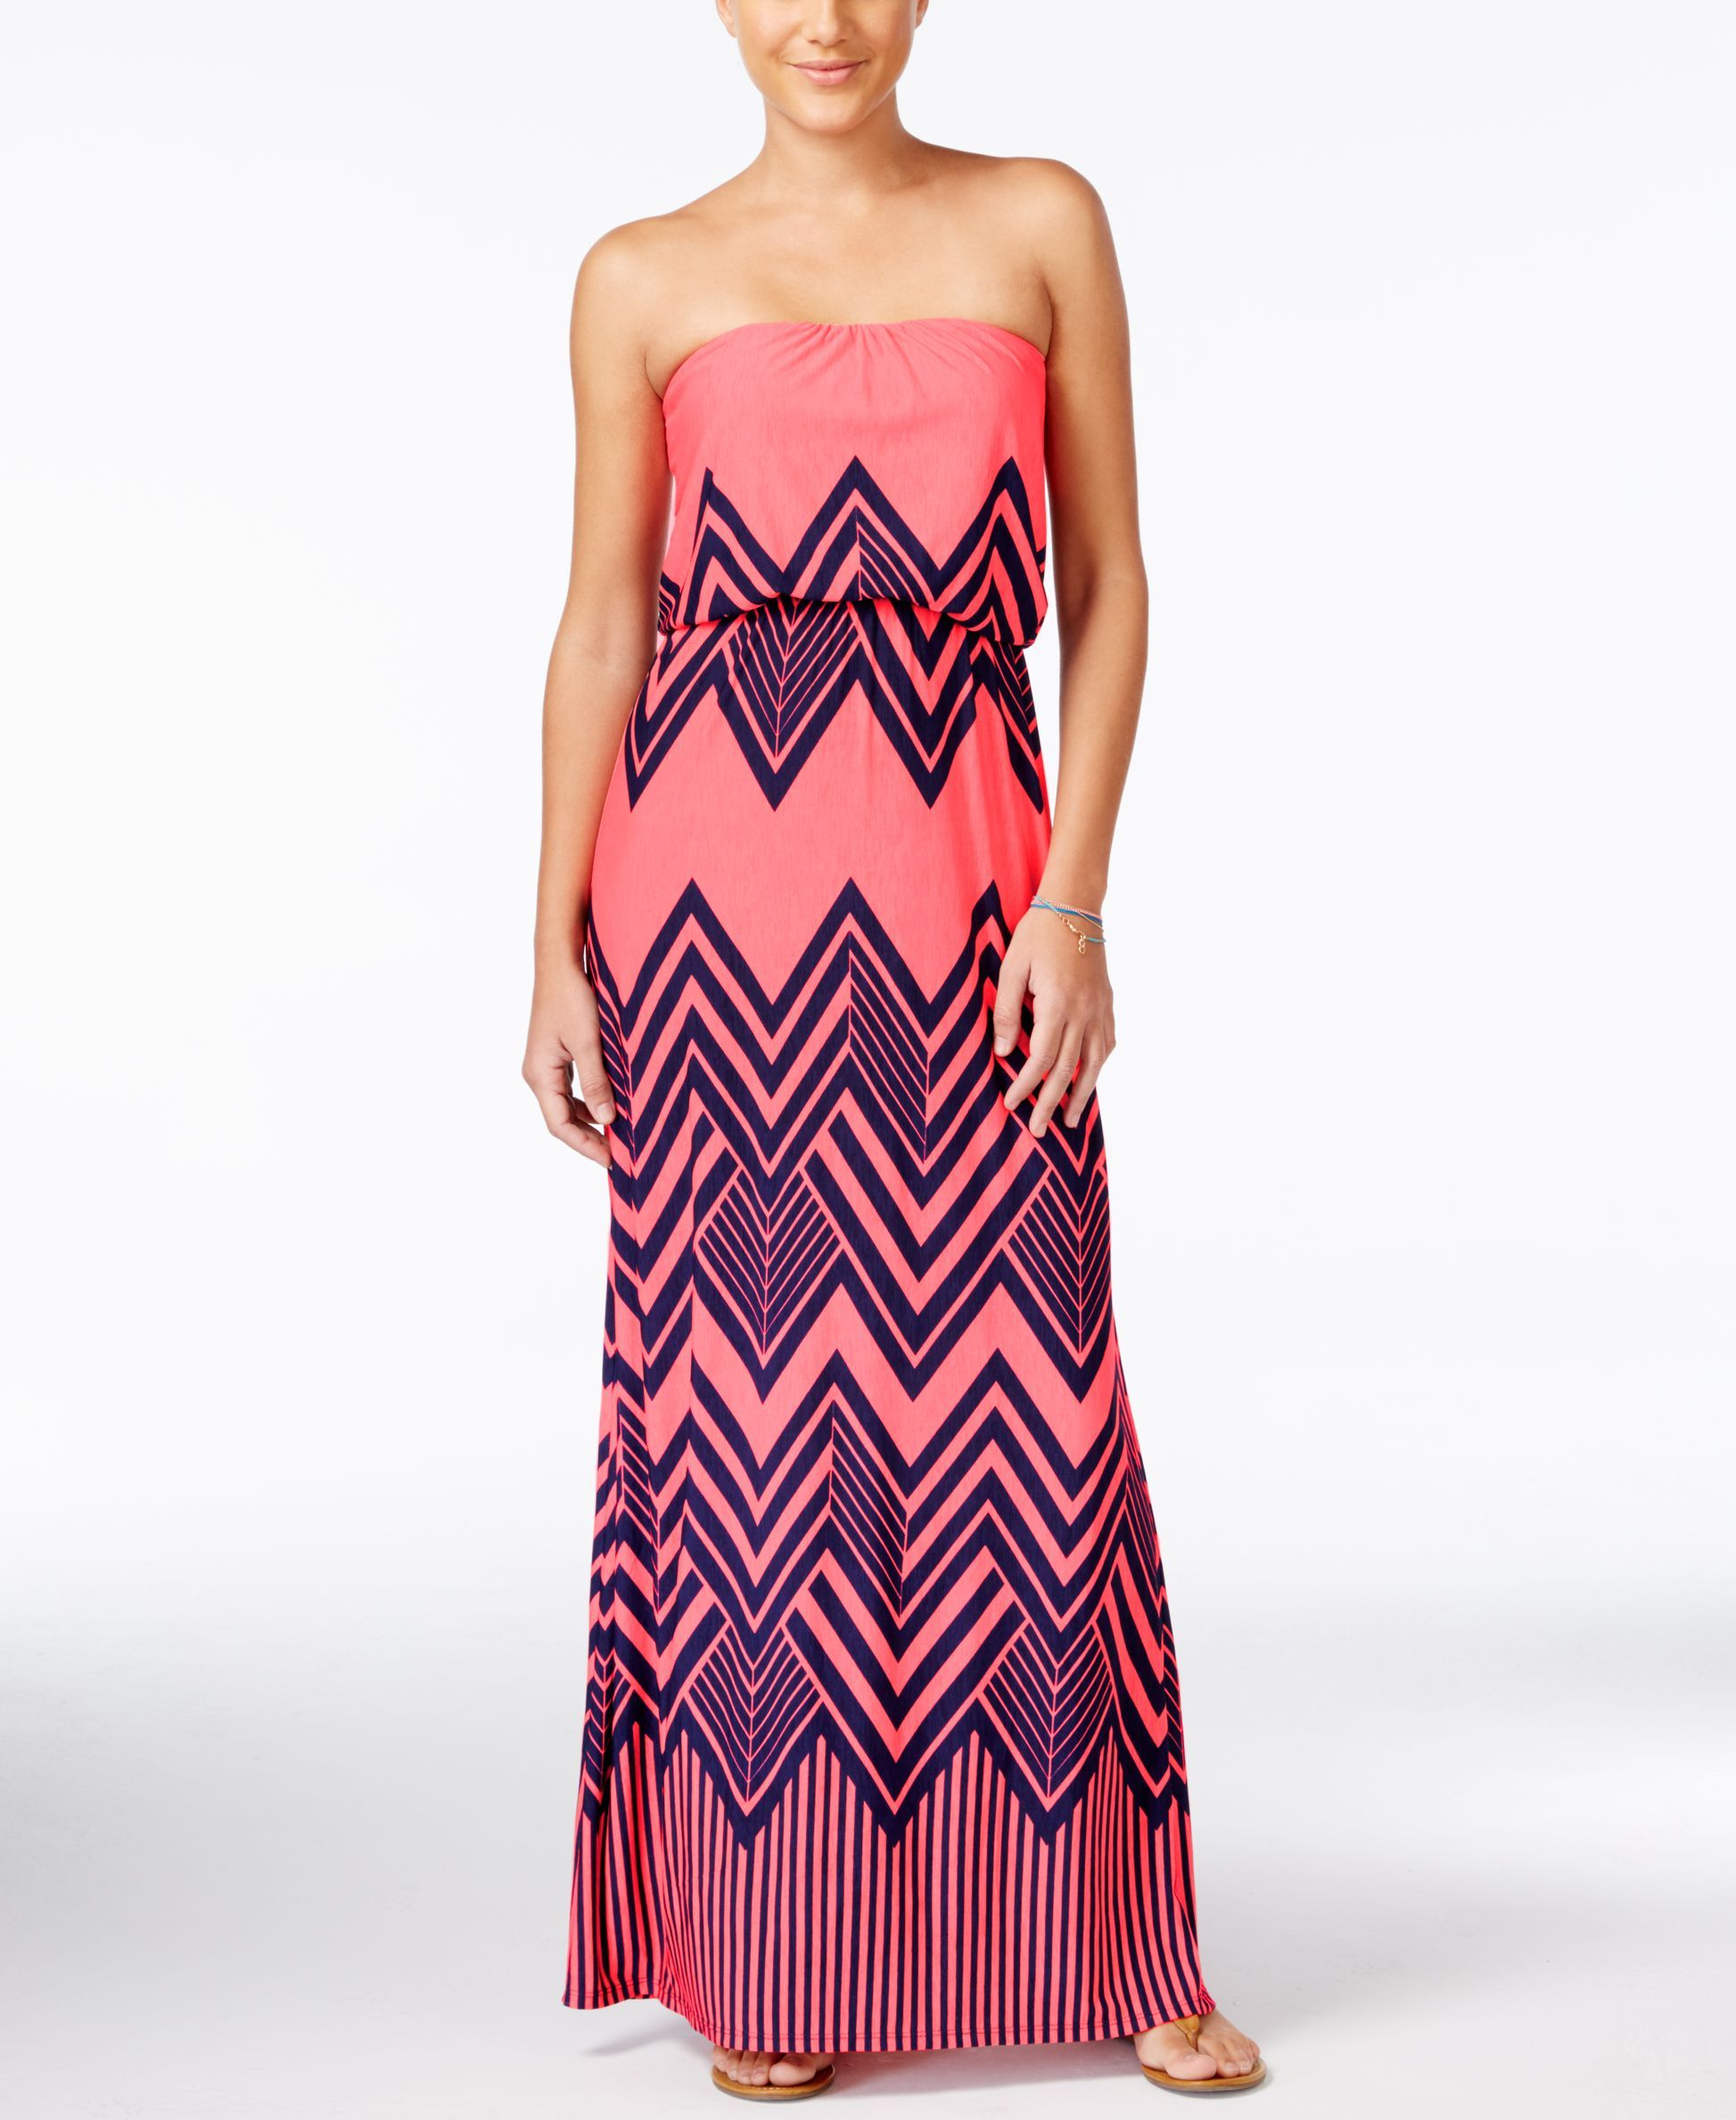 b6650c20aeb Trixxi Juniors  Strapless Printed Maxi Dress